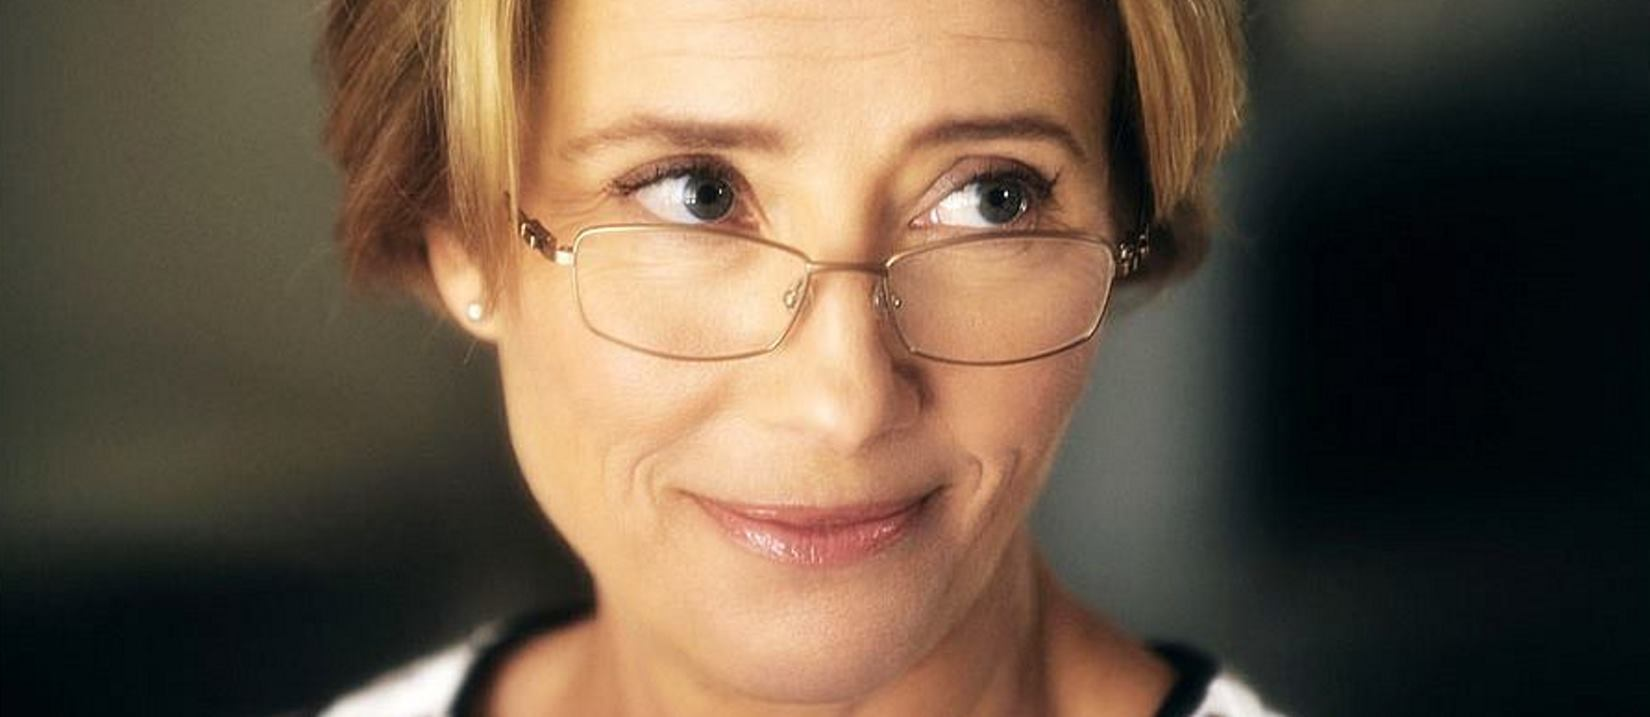 VIDEO: EMMA THOMPSON: 'Položaj žena u filmskoj industriji je sr..e'